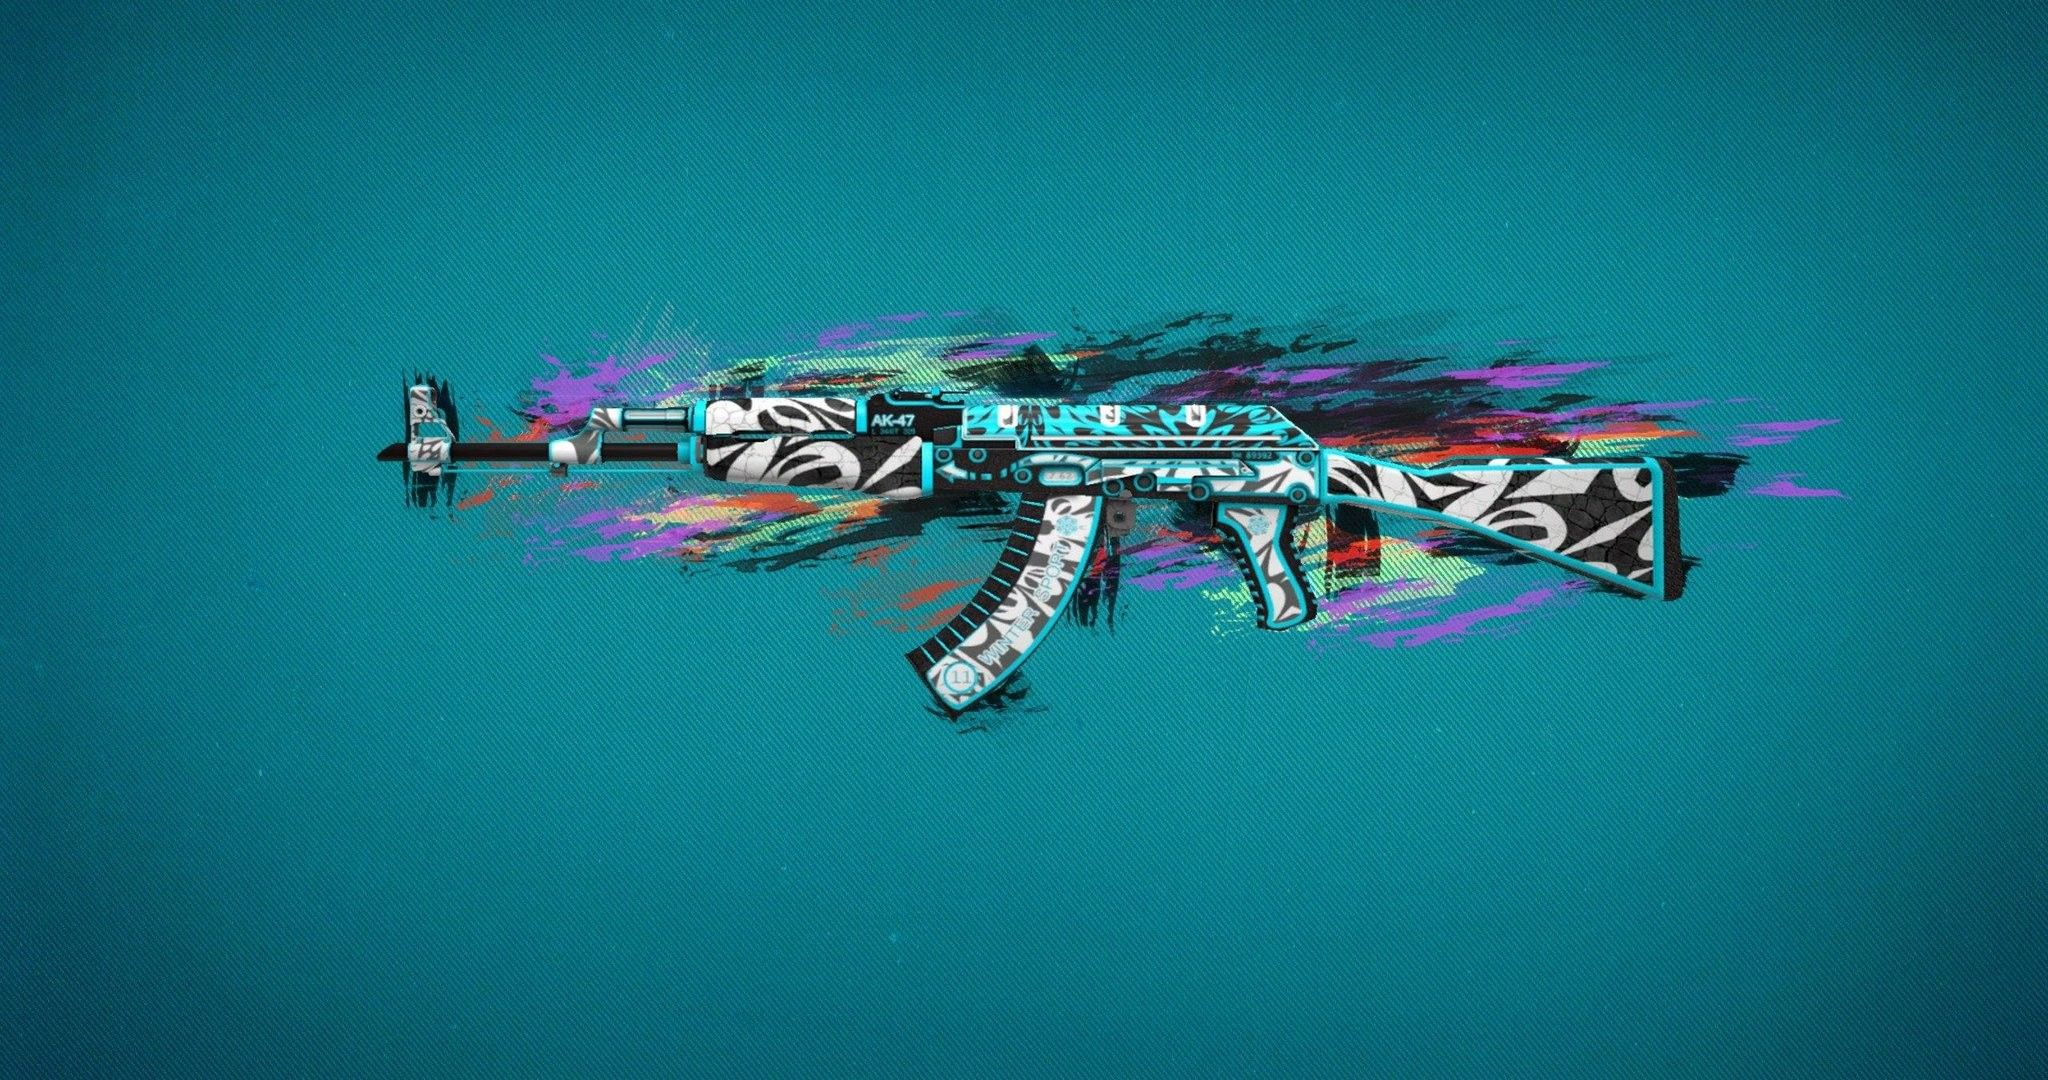 84 Csgo Phone Wallpapers On Wallpaperplay In 2019 Go